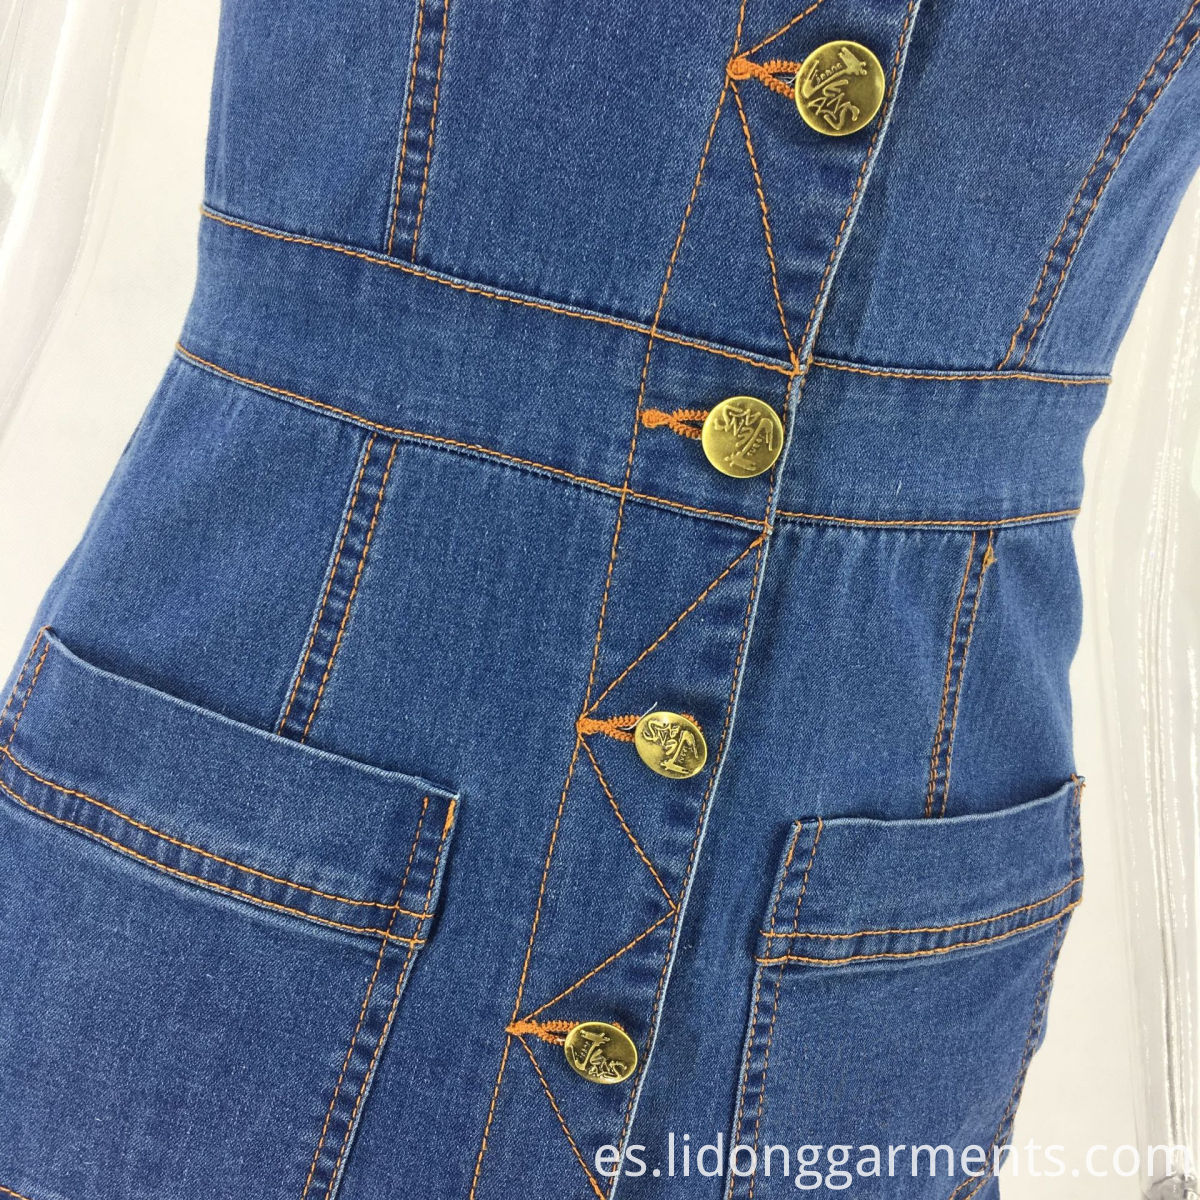 Jean Dresses with Buttons